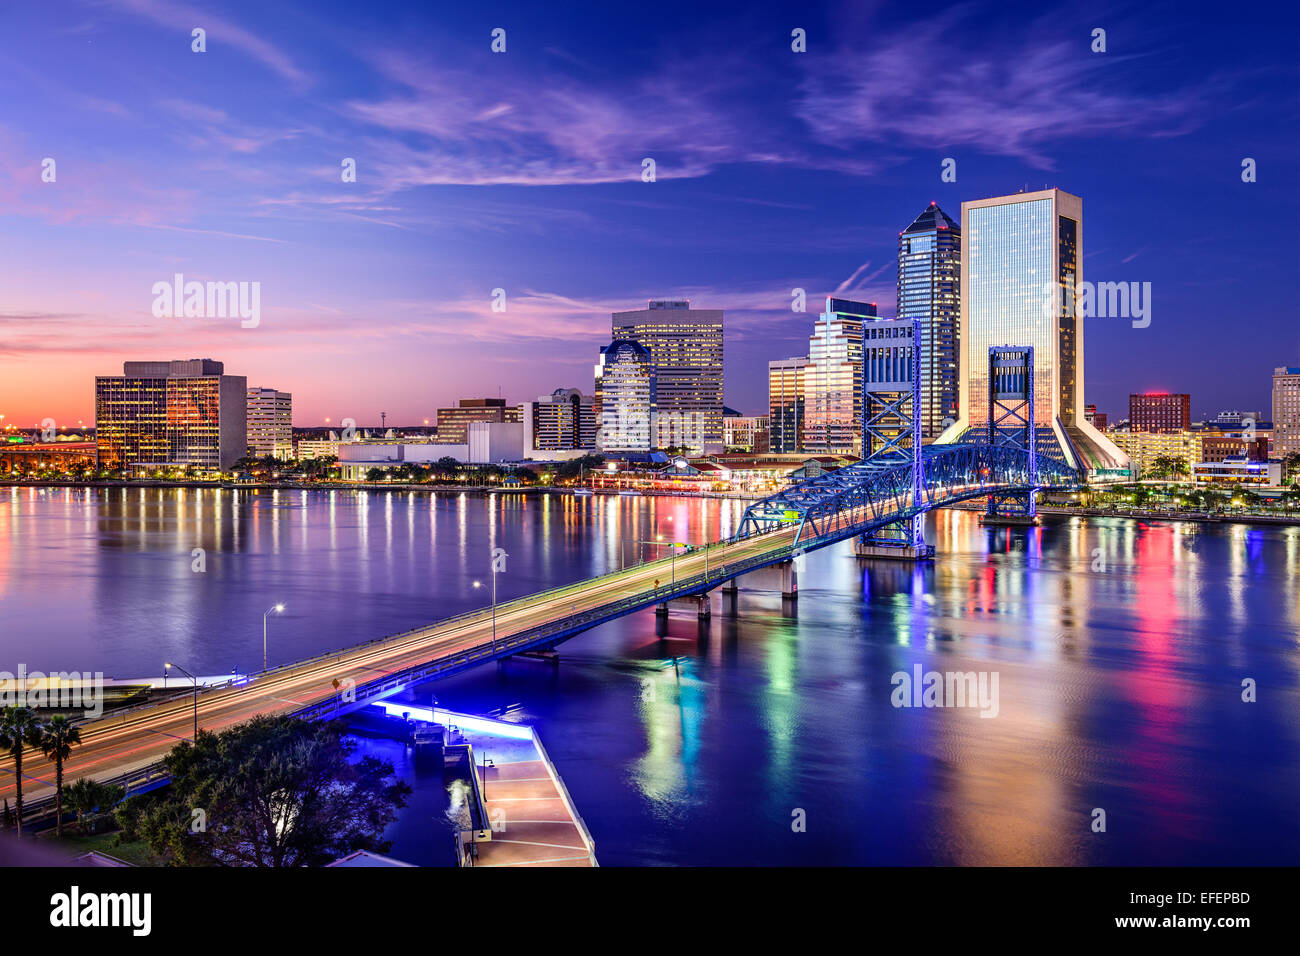 Jacksonville florida usa downtown city skyline stock for Best places to live in jacksonville fl